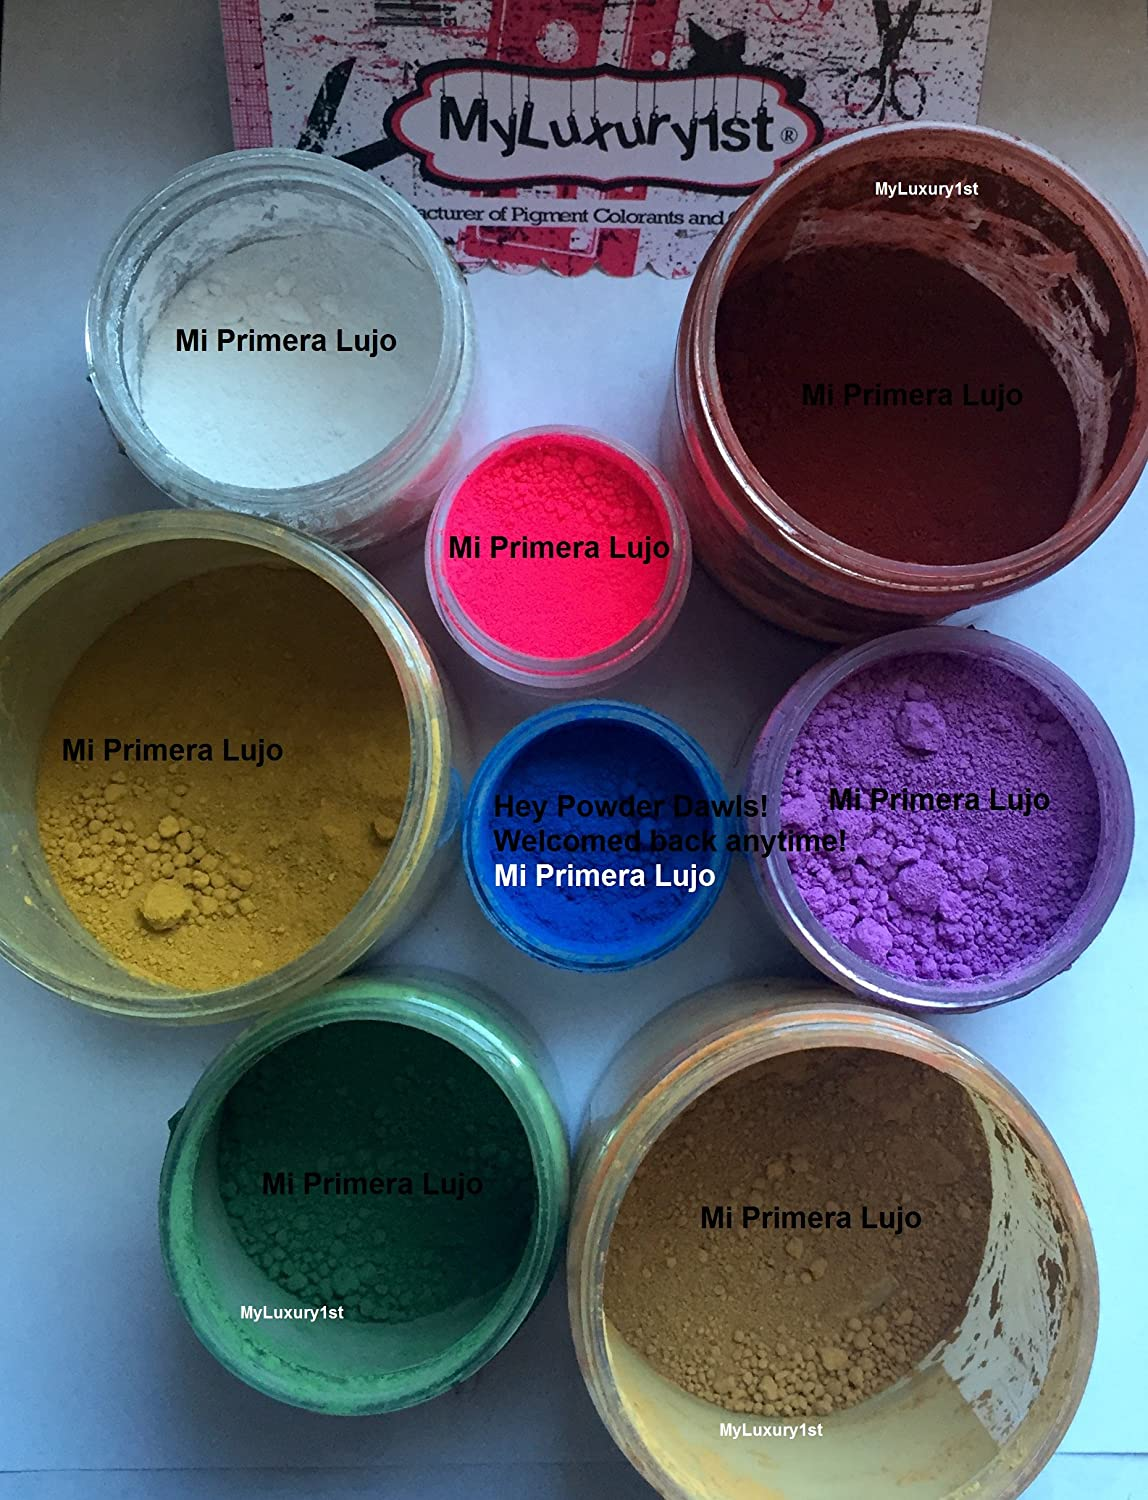 8 Cosmetic Grade Matte Colorant for DIY Mineral Makeup & Soap Makings 3g Neon Pink Blue Orchid Ultramarine Yellow 10g Golden Oxide Red Chromium 5 gram Green White MyLuxury1st Den Coloration